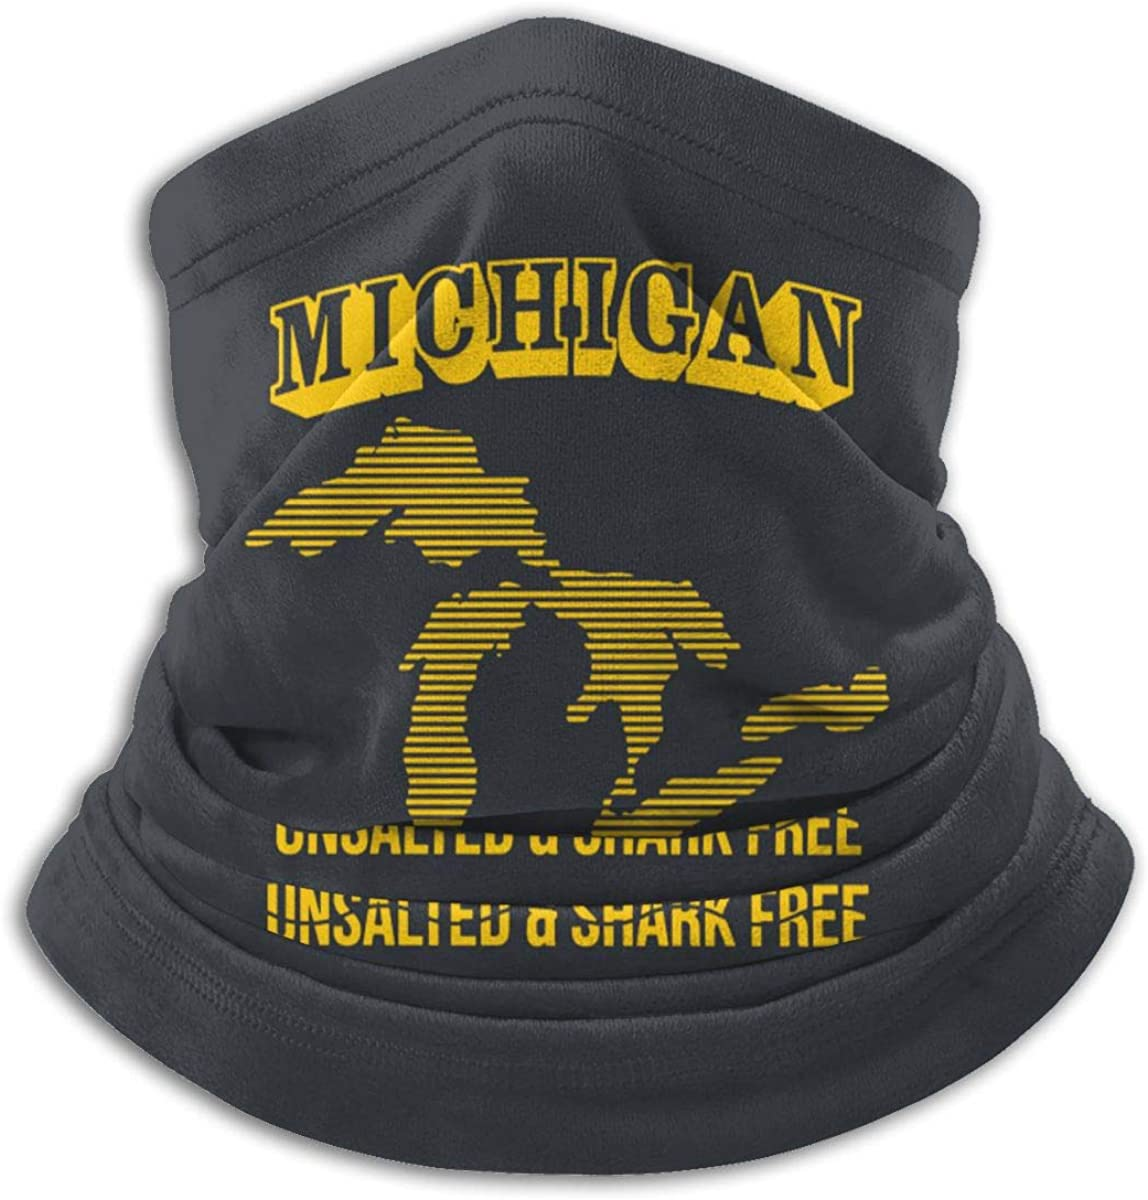 Michigan Unsalted Shark Free Face Mask Protection from Dust Uv Washable Warmer Scarf